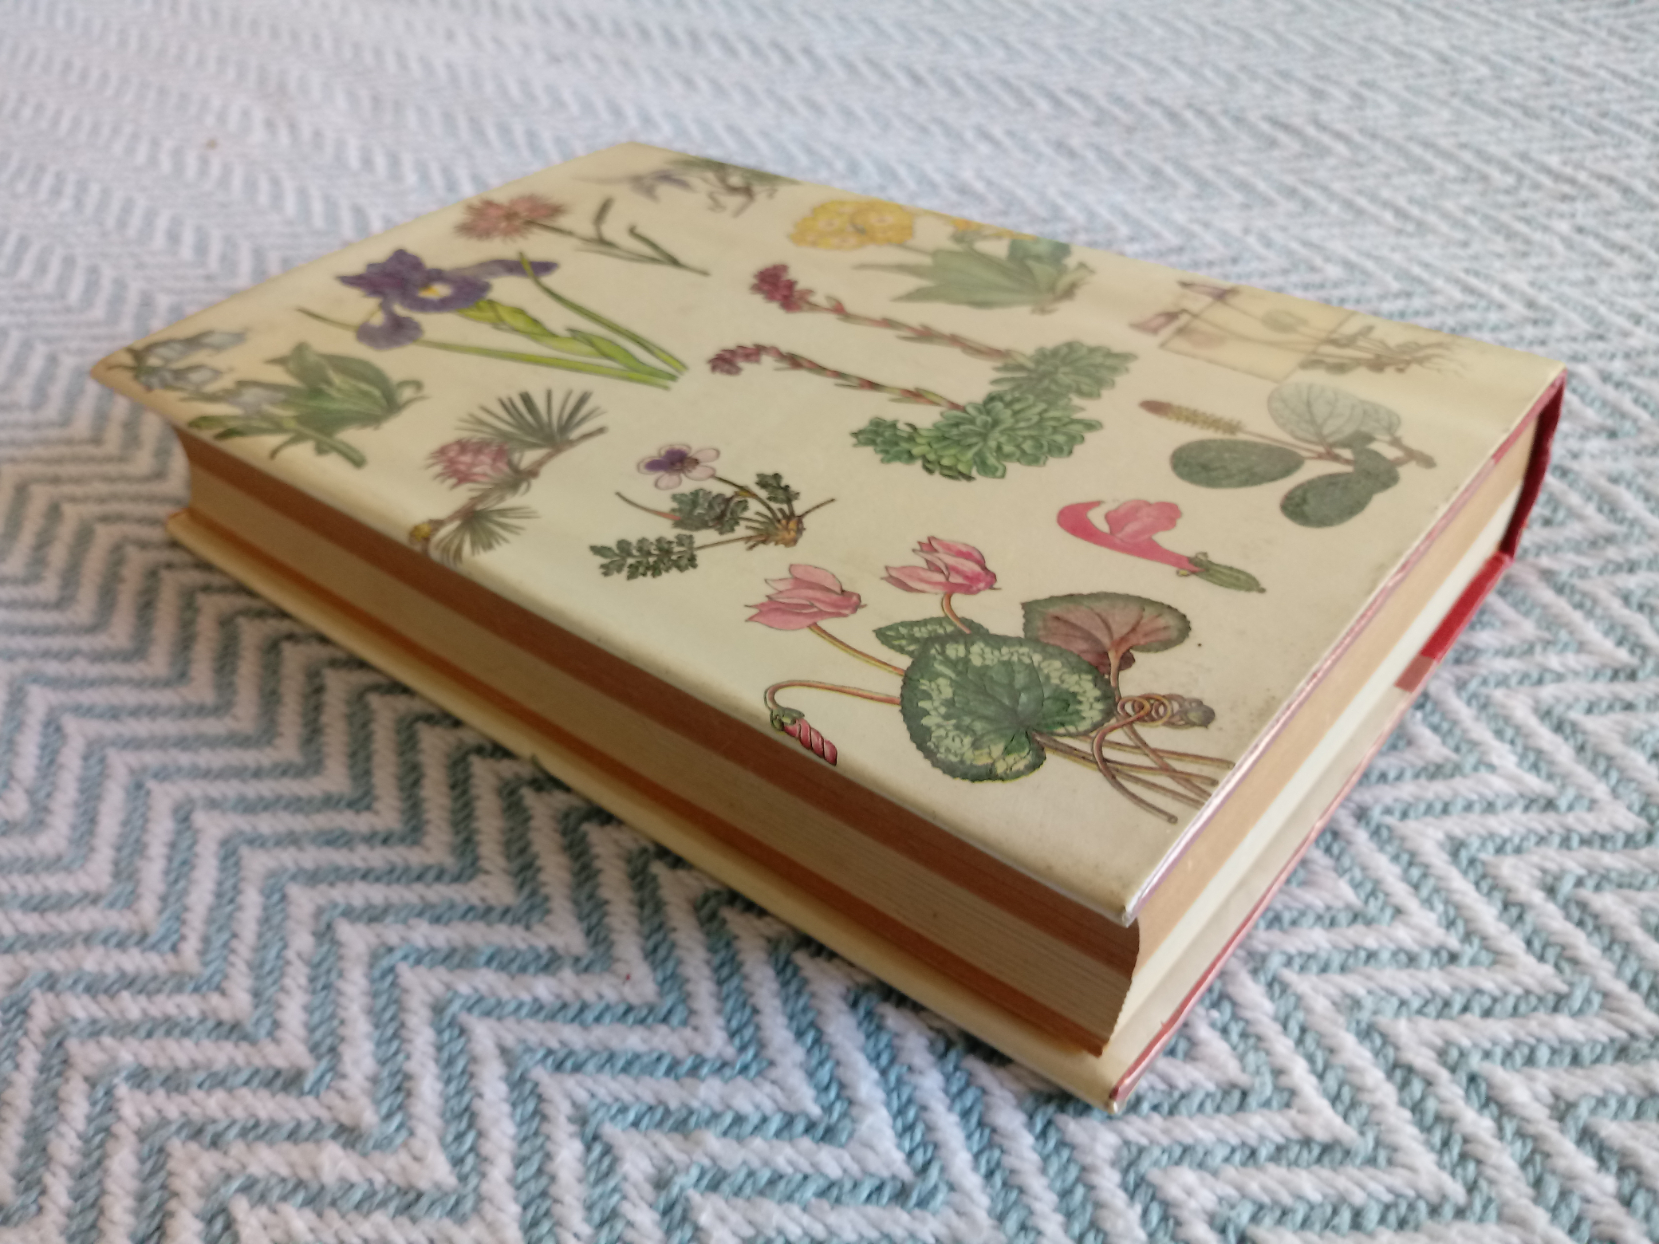 Mountain Flowers In Colour by Anthony Huxley hardback book 428 pages Published 1967 Bradford - Image 2 of 5